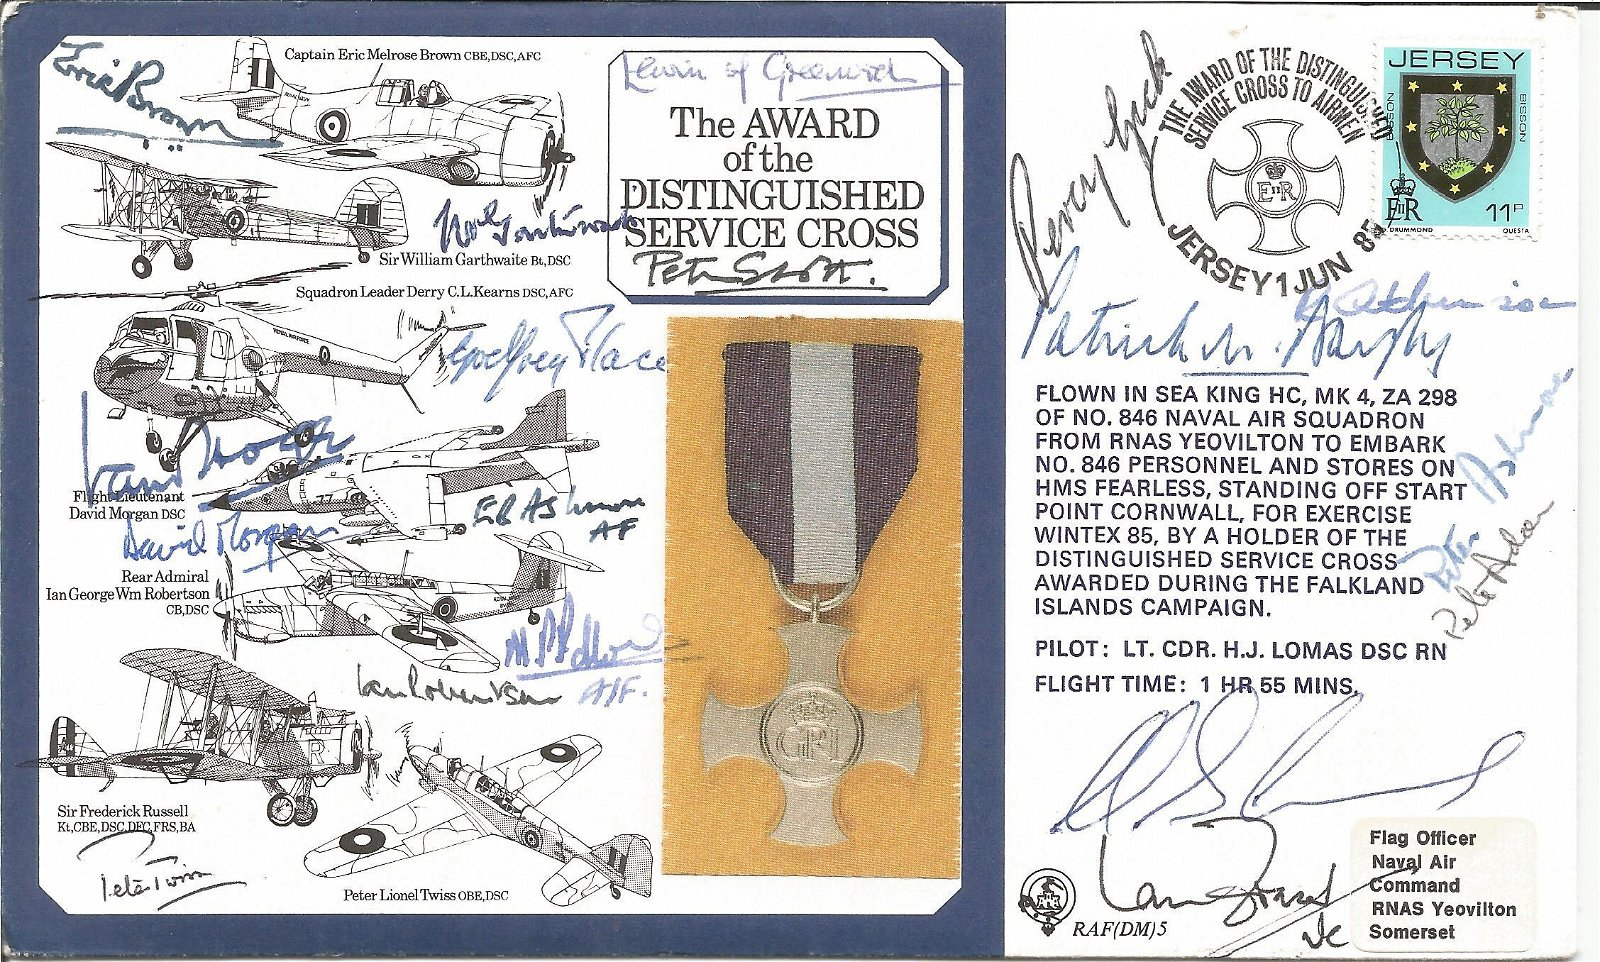 WW2 Award of Distinguished Service Cross cover signed